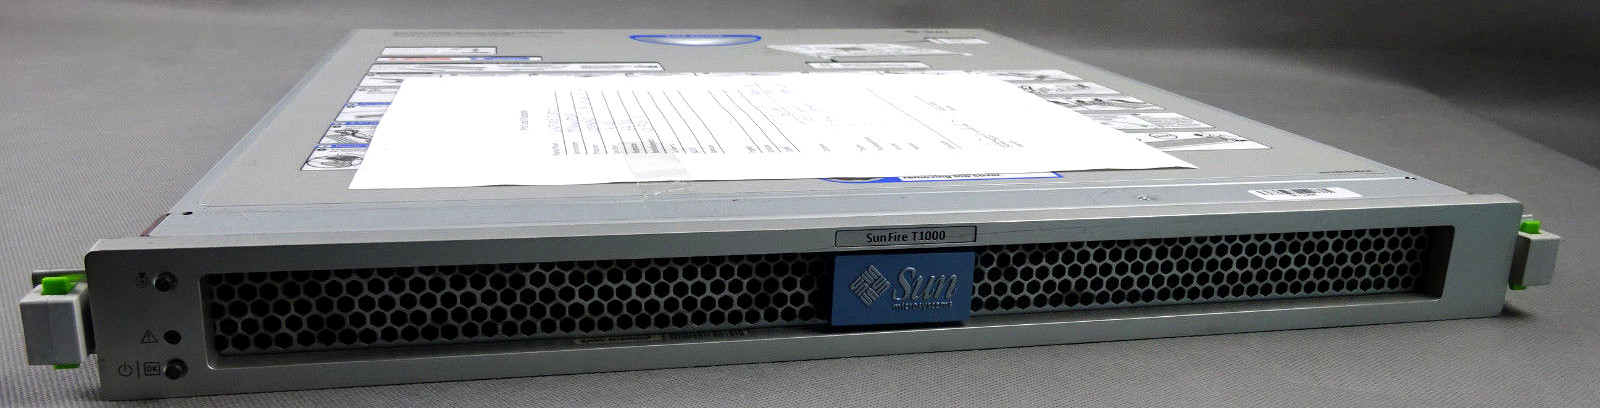 Sun Fire UltraSparc T1000 RISC Server Overview